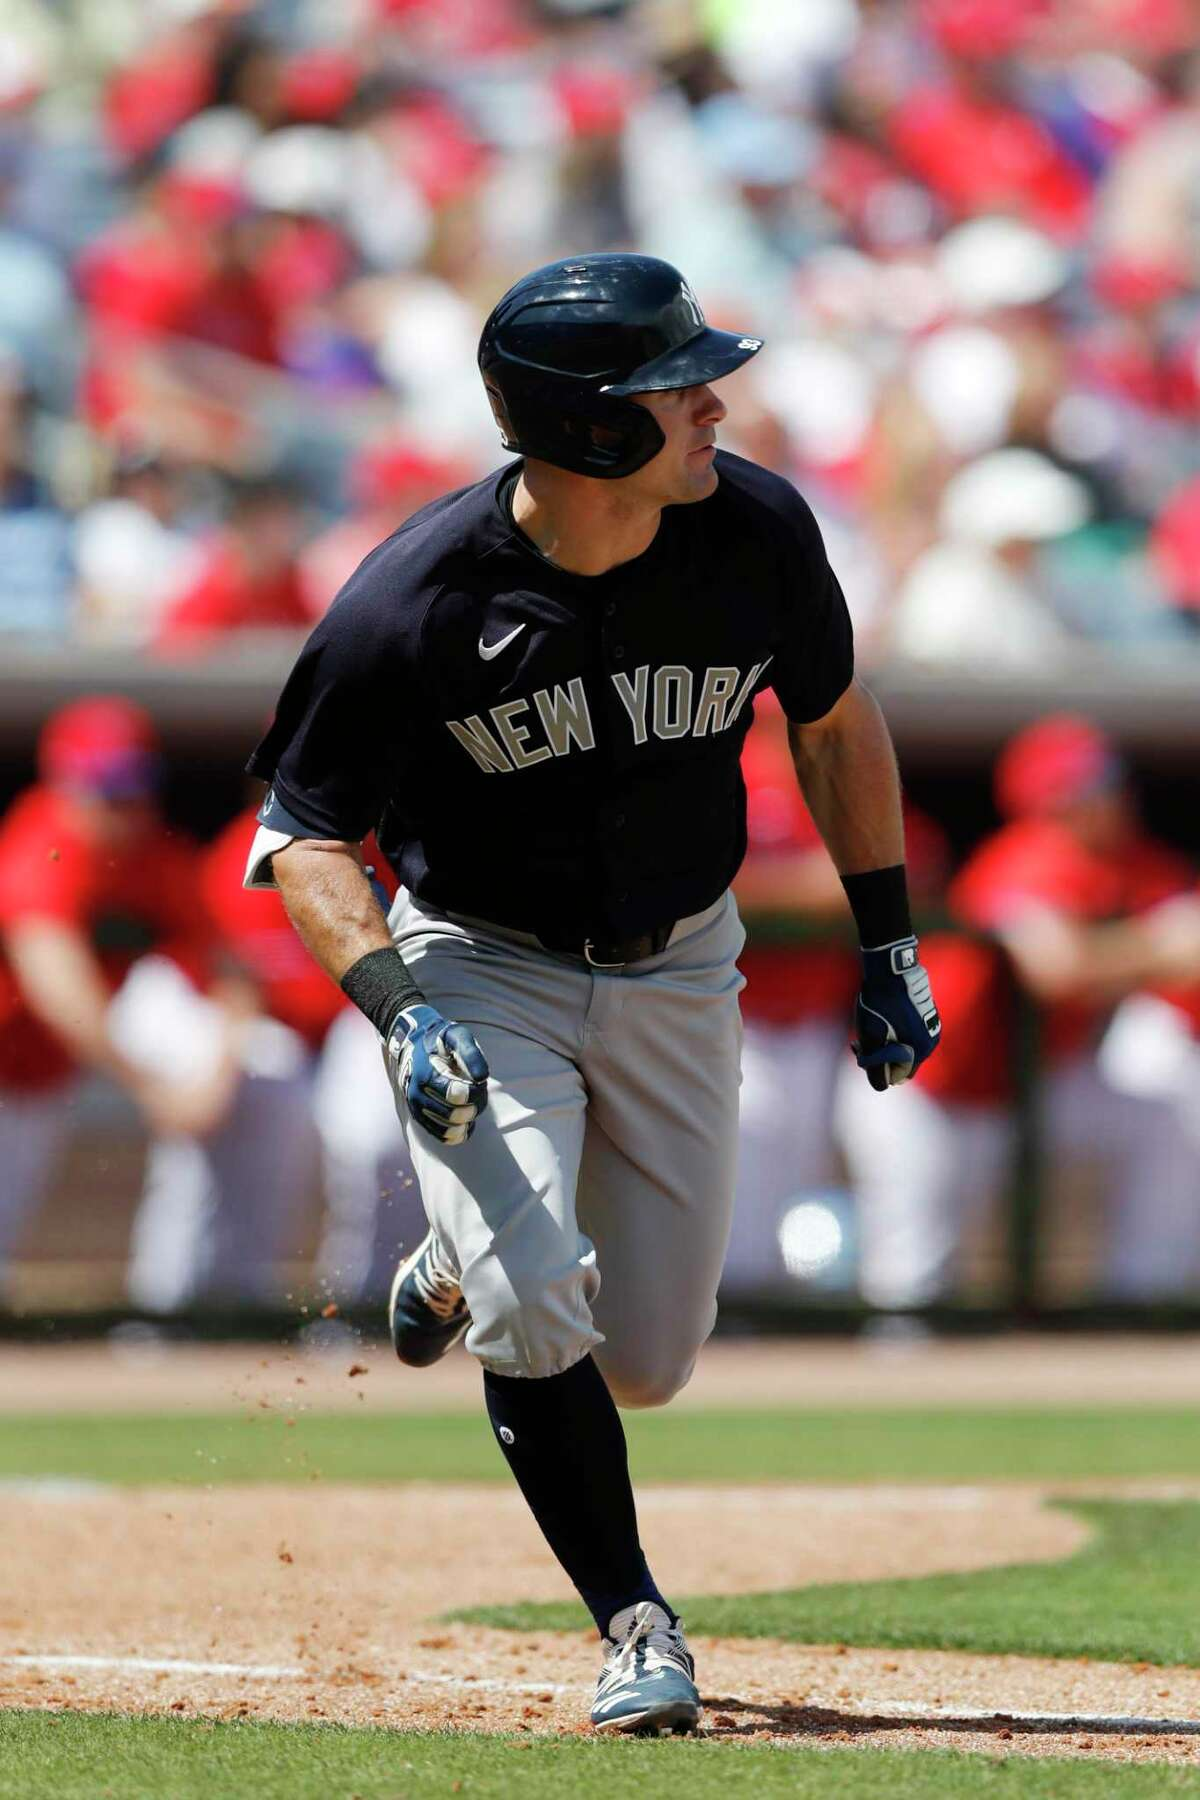 New York Yankees' Thomas Milone runs to first during a spring training baseball game, Monday, March 9, 2020, in Clearwater, Fla. (AP Photo/Carlos Osorio)